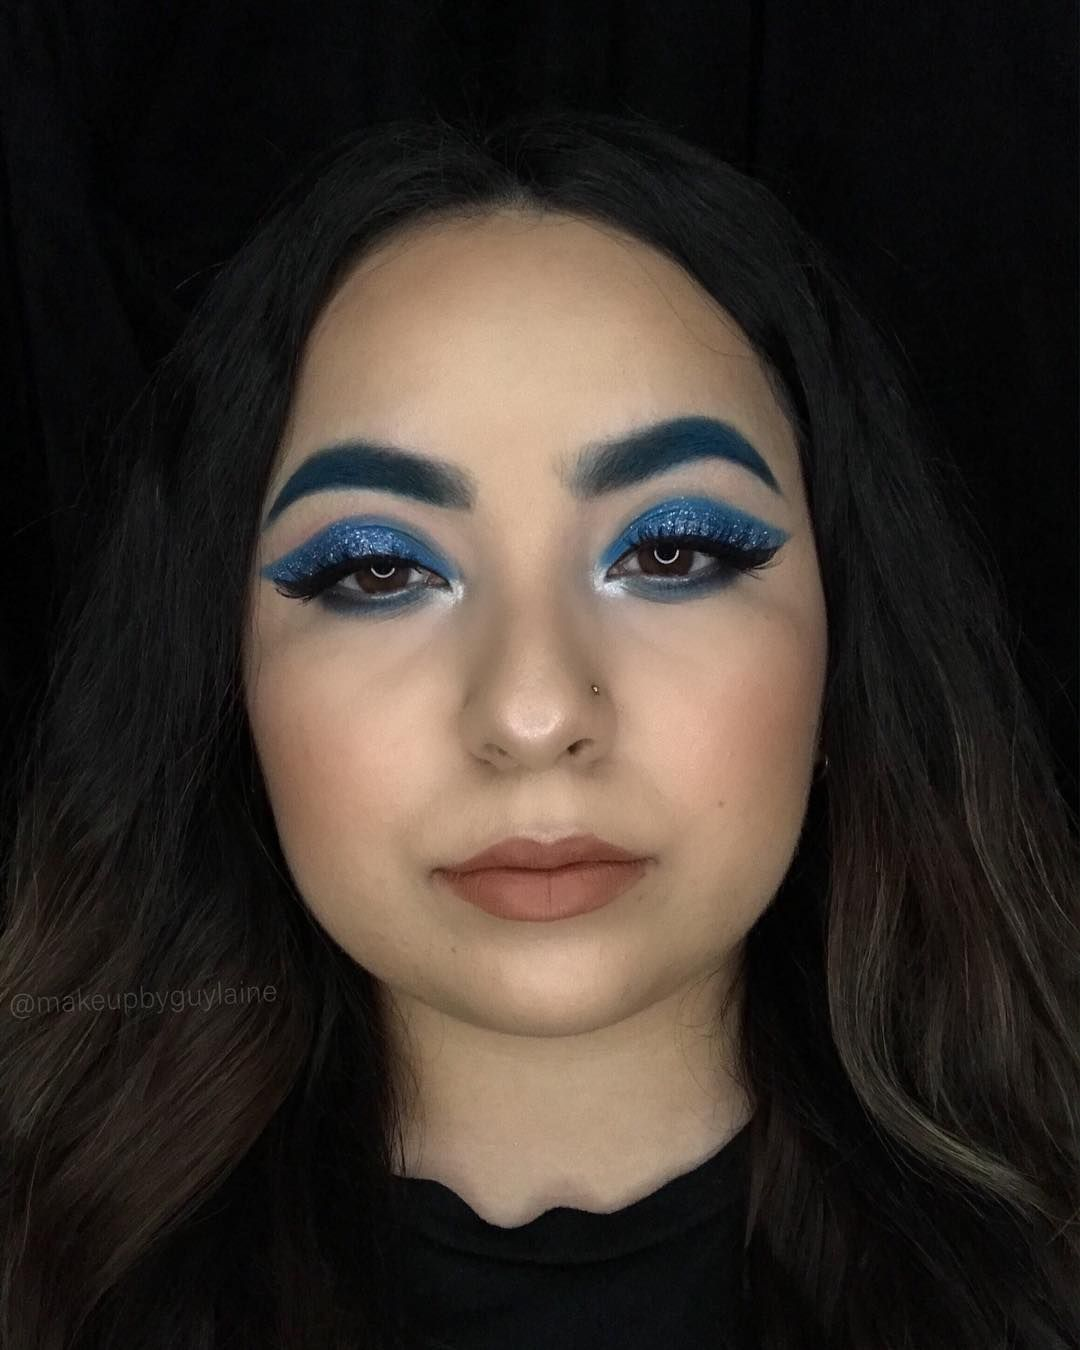 New The 10 Best Makeup Today With Pictures Makeup